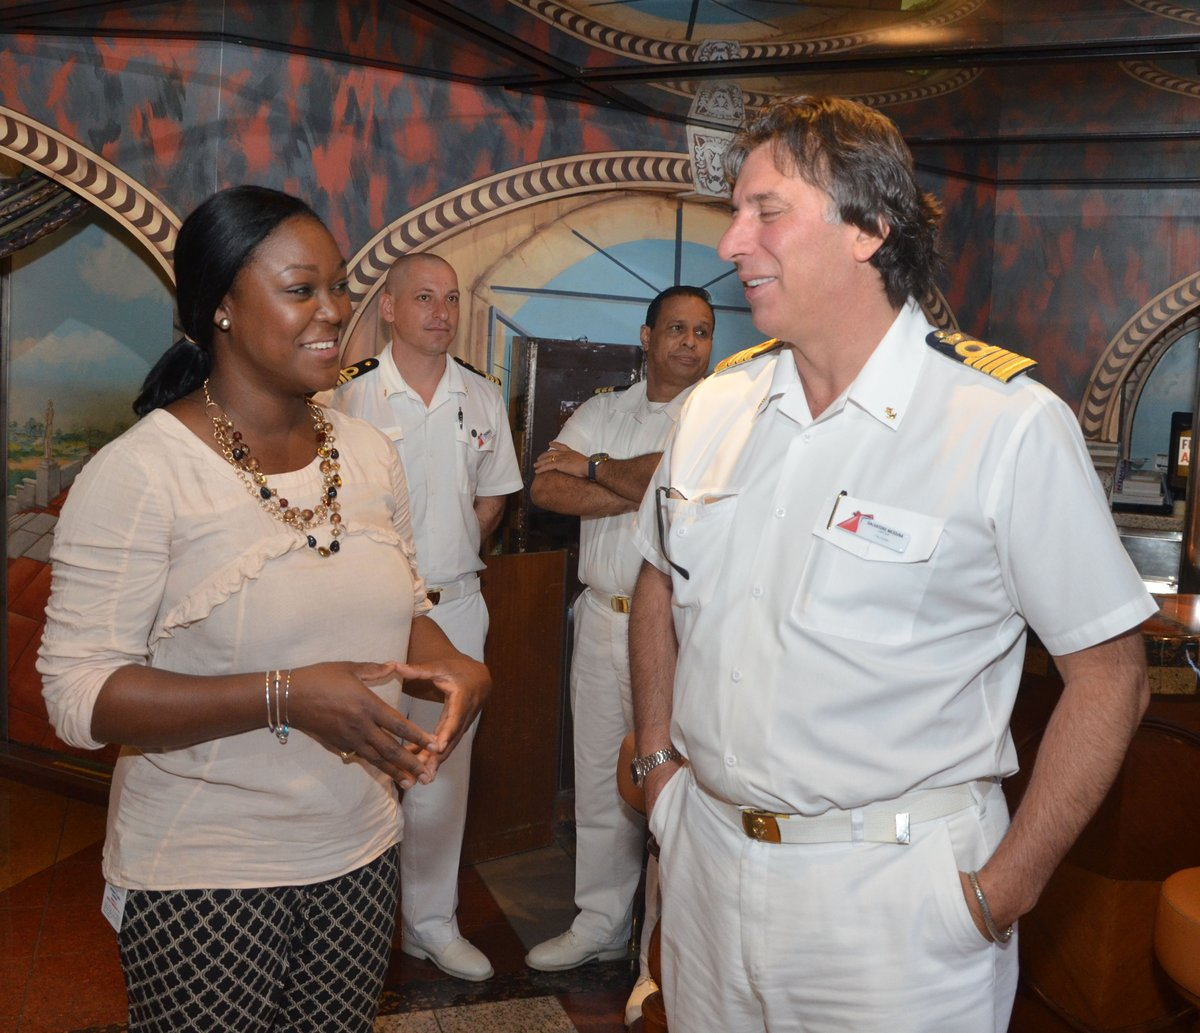 SEC TRACY DAVIDSON-CELESTINE SHARED A MOMENT WITH CAPT SALVATORE MESSINA DSC_0463.jpg